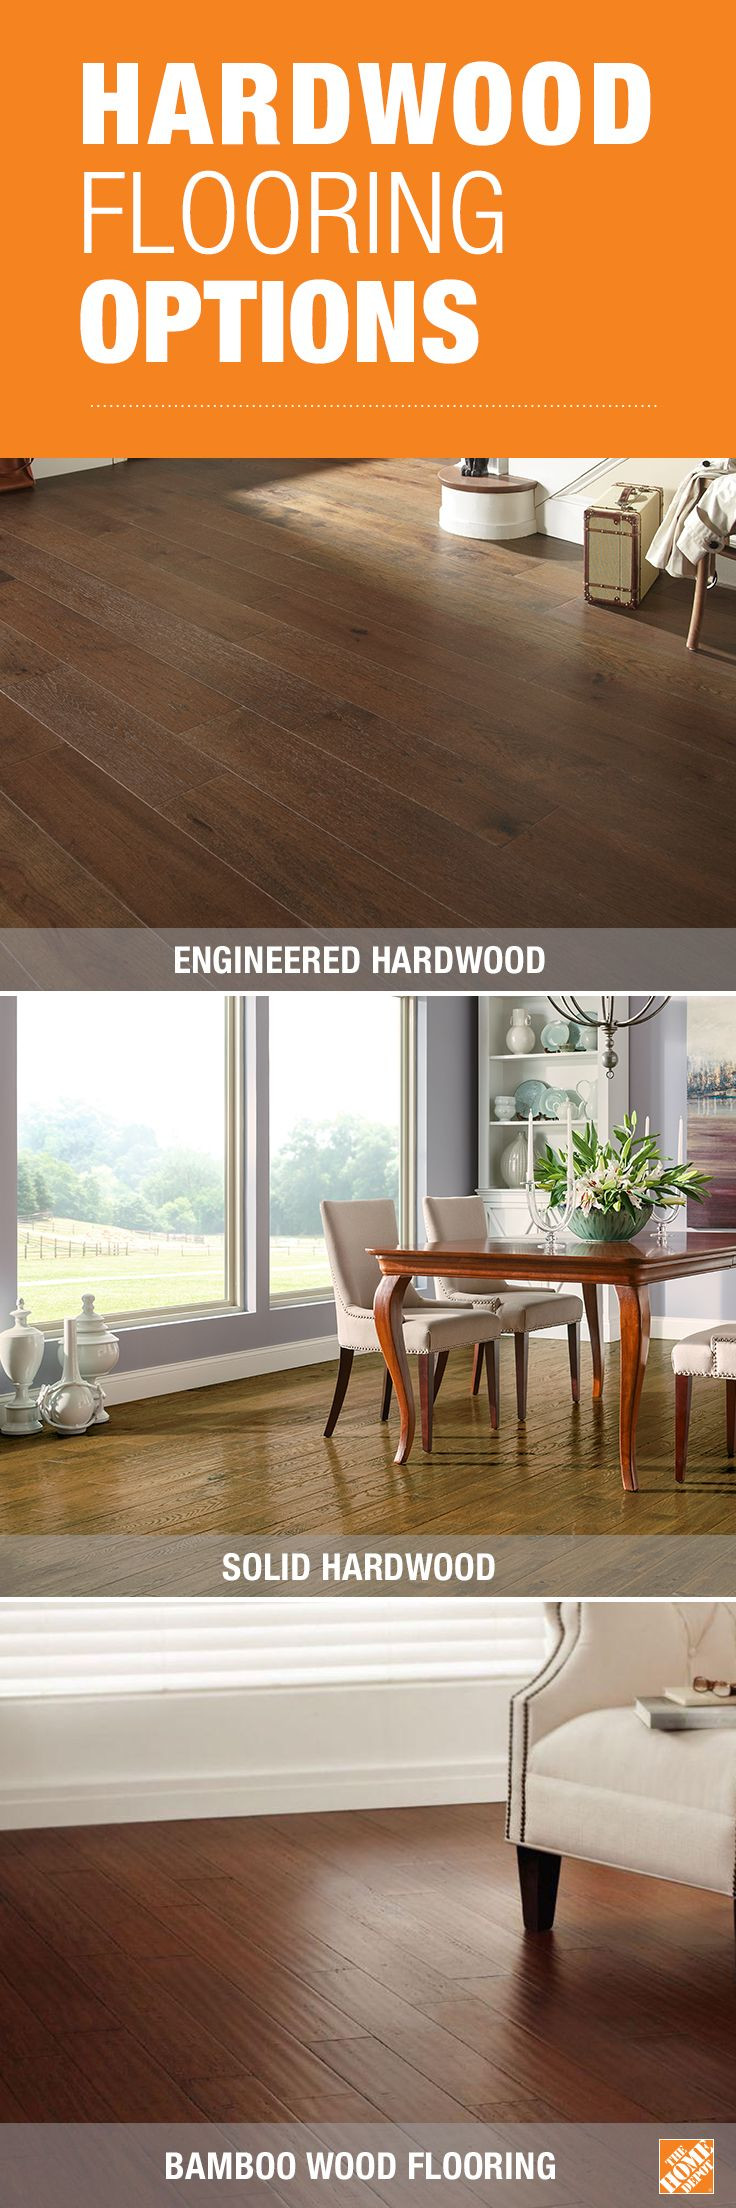 Hardwood Flooring Burlington Vt Of 62 Best Flooring Ideas Images On Pinterest Rugs Flooring Ideas within Find A Wide Selection Of Wood Flooring at the Home Depot Including the Latest In